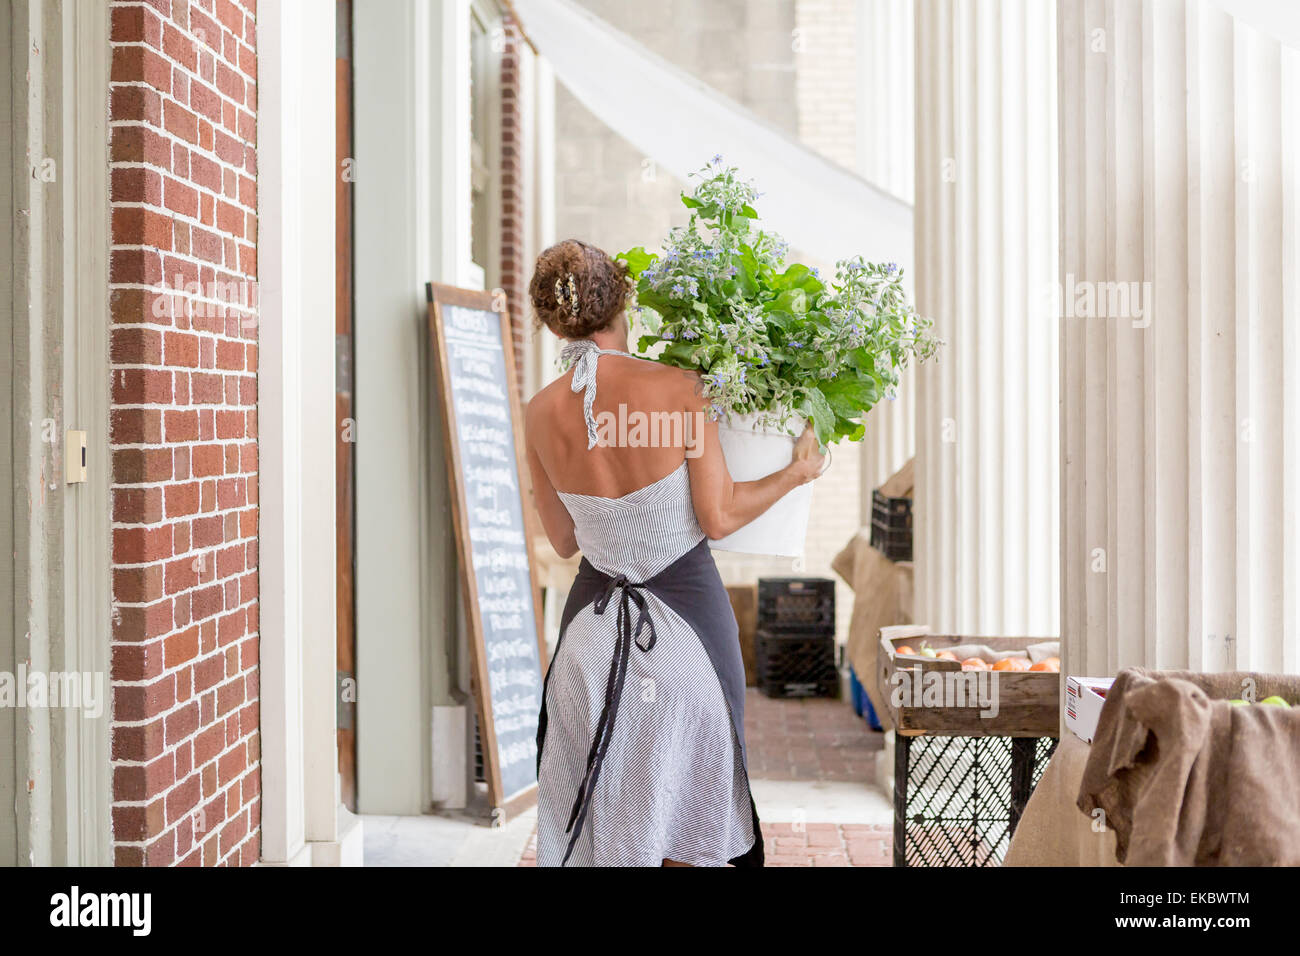 A woman unloads organic goods outside a grocery store - Stock Image